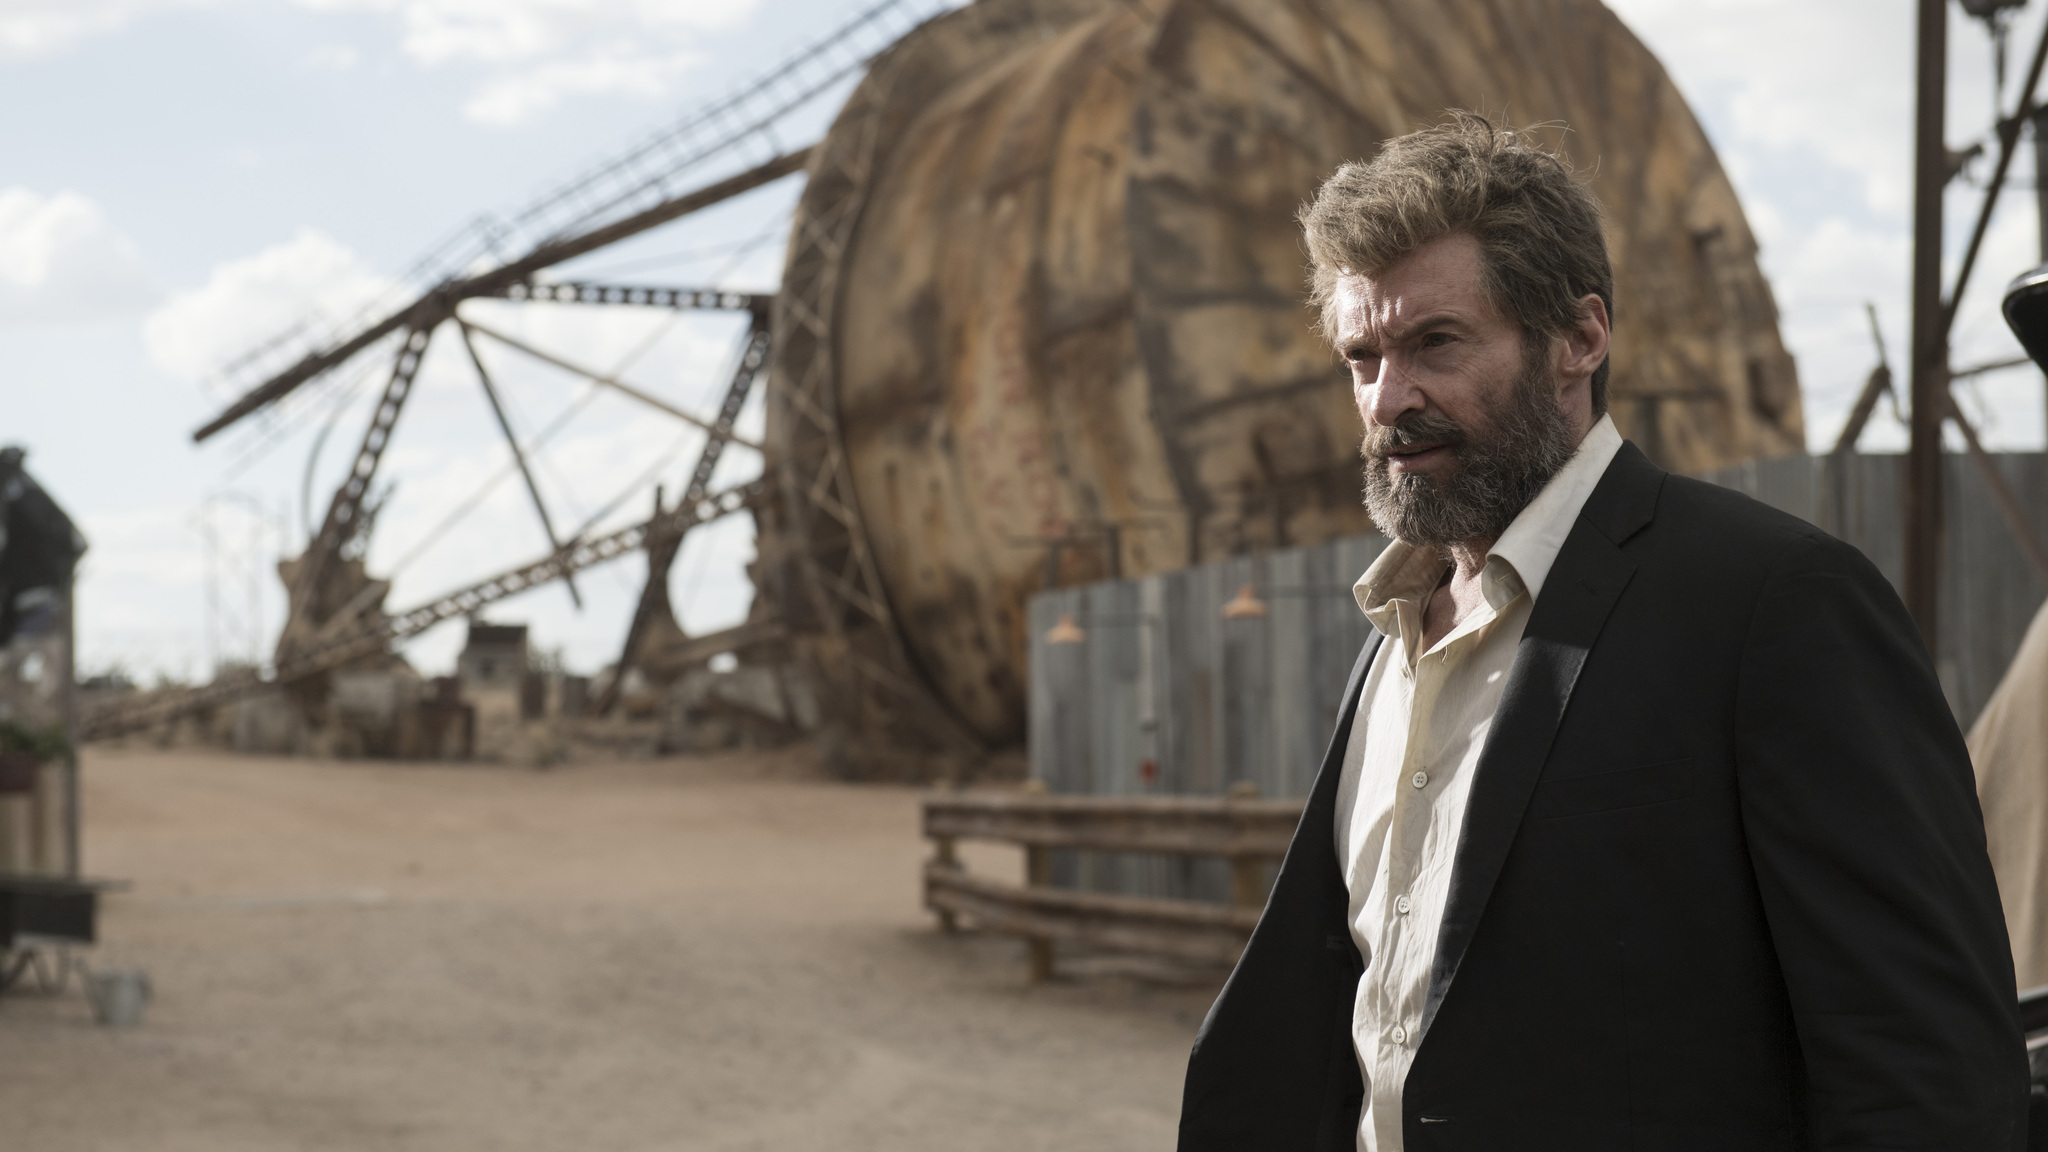 hugh-jackman-in-logan-movie-on.jpg